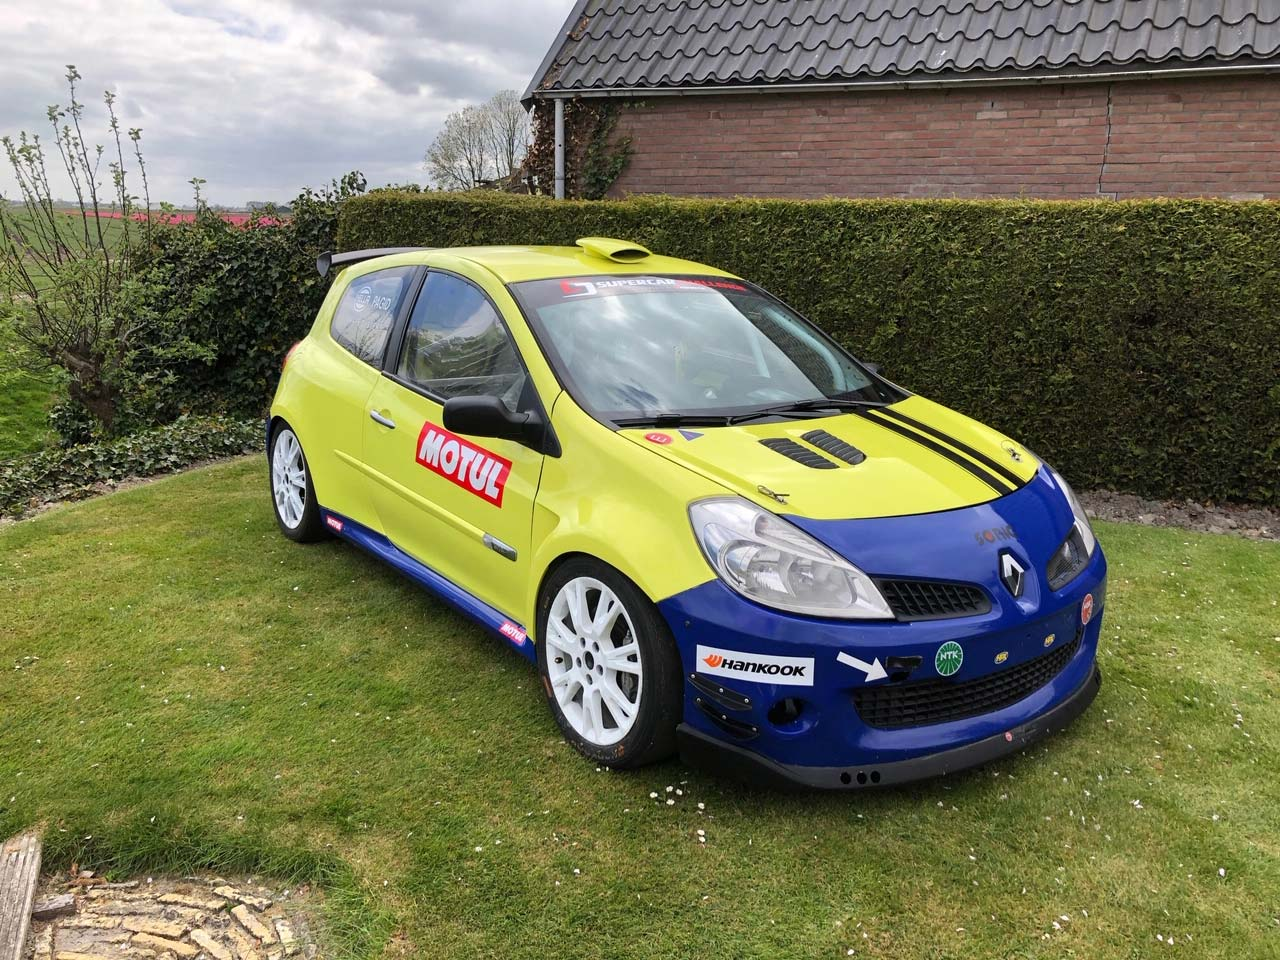 Clio-racing-for-sale_1280x960_05